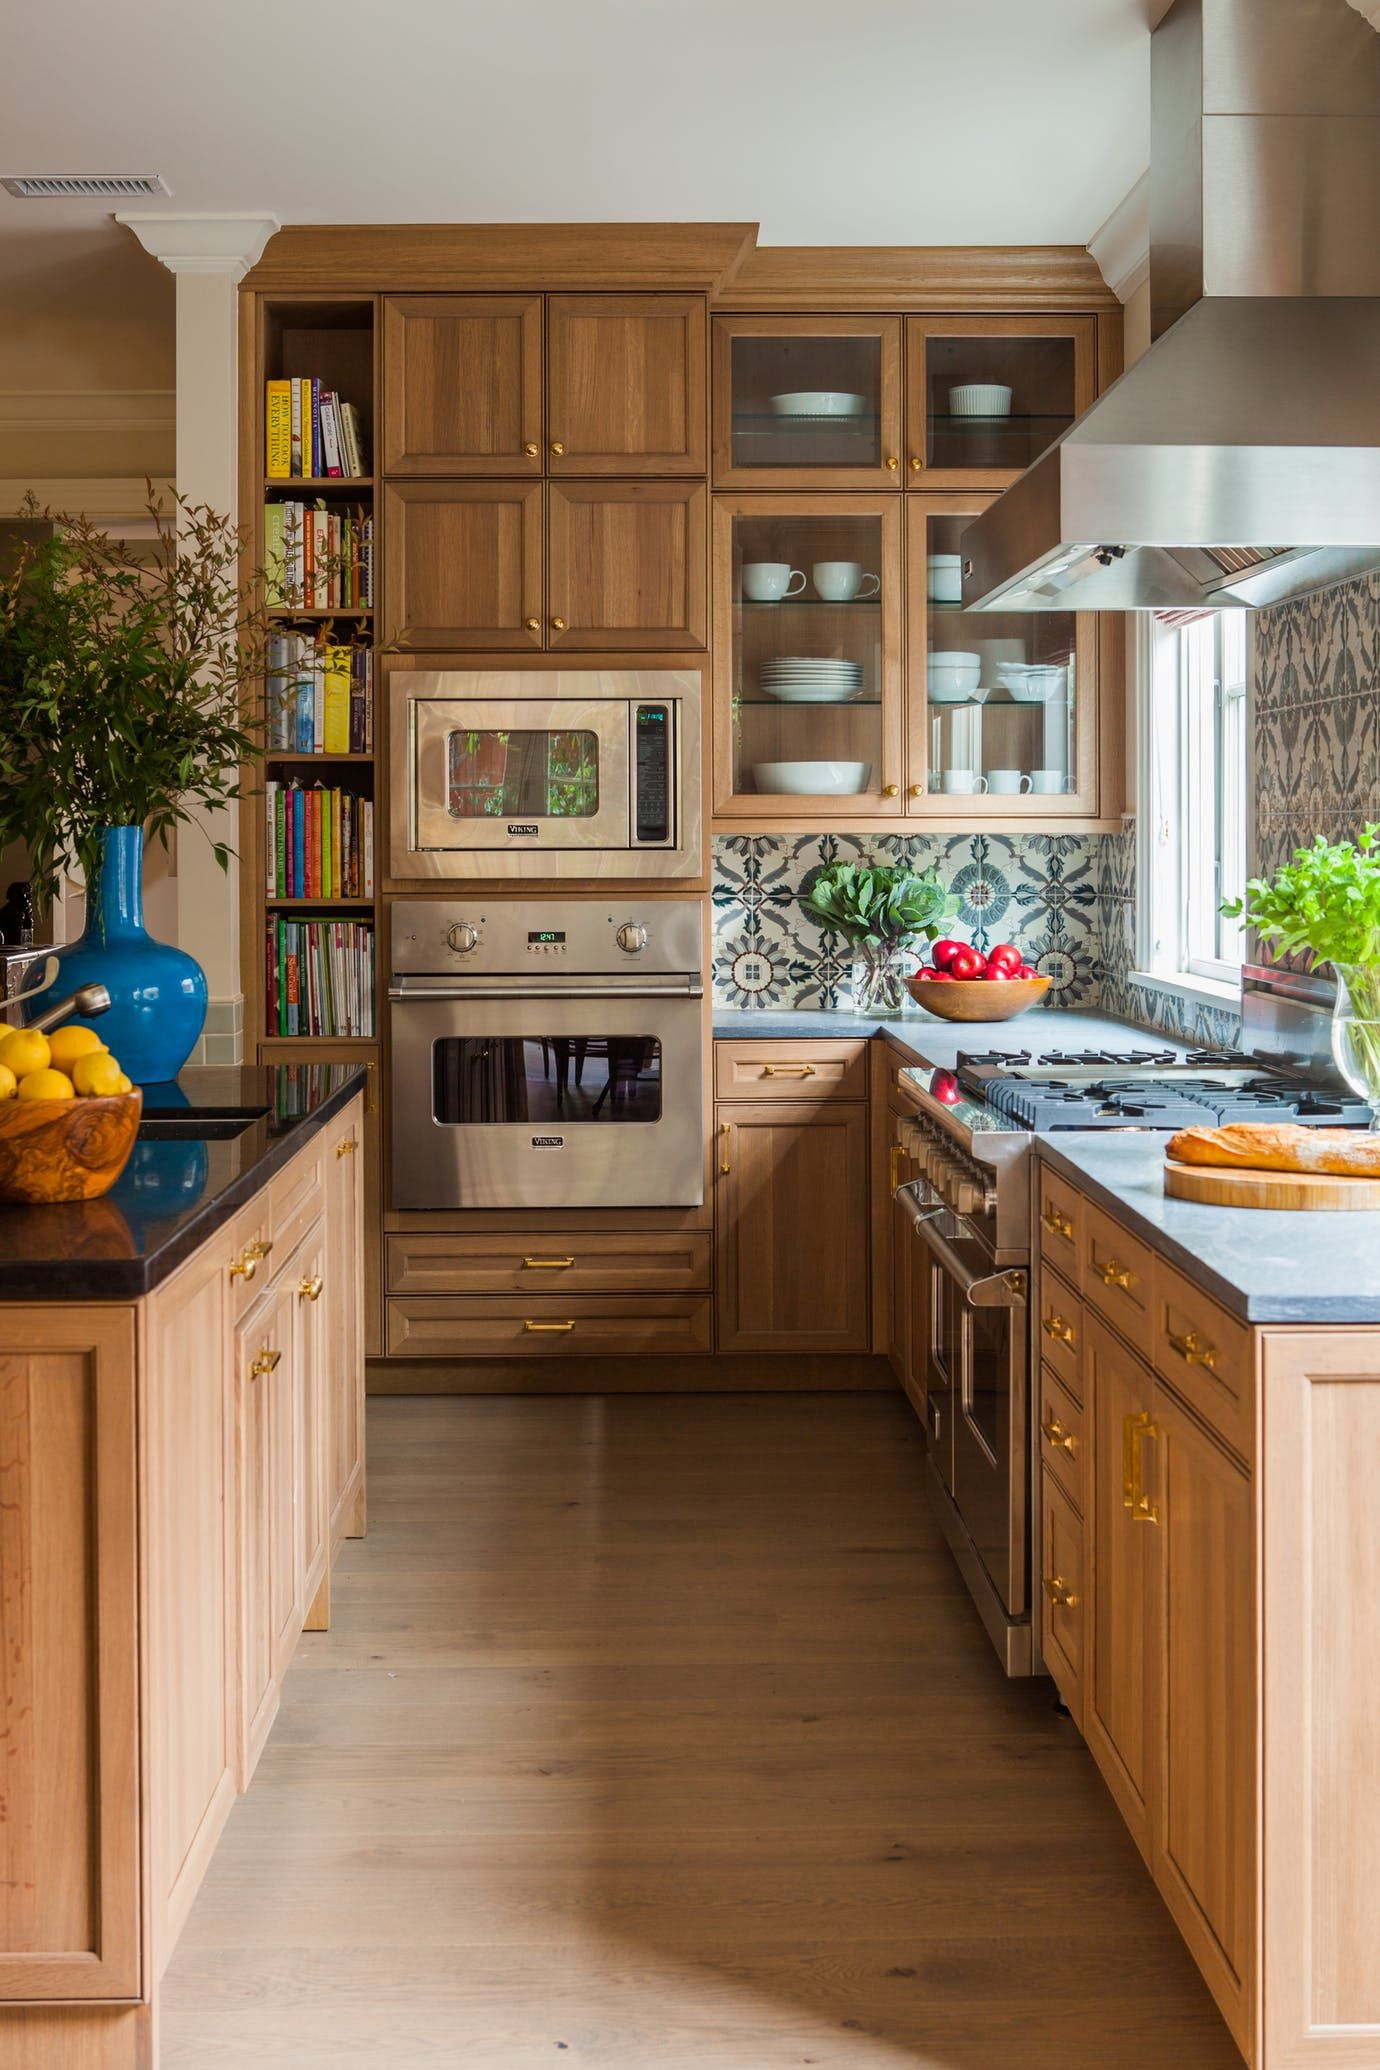 Presidio Heights Kitchen with warm wood cabinets and patterned tile